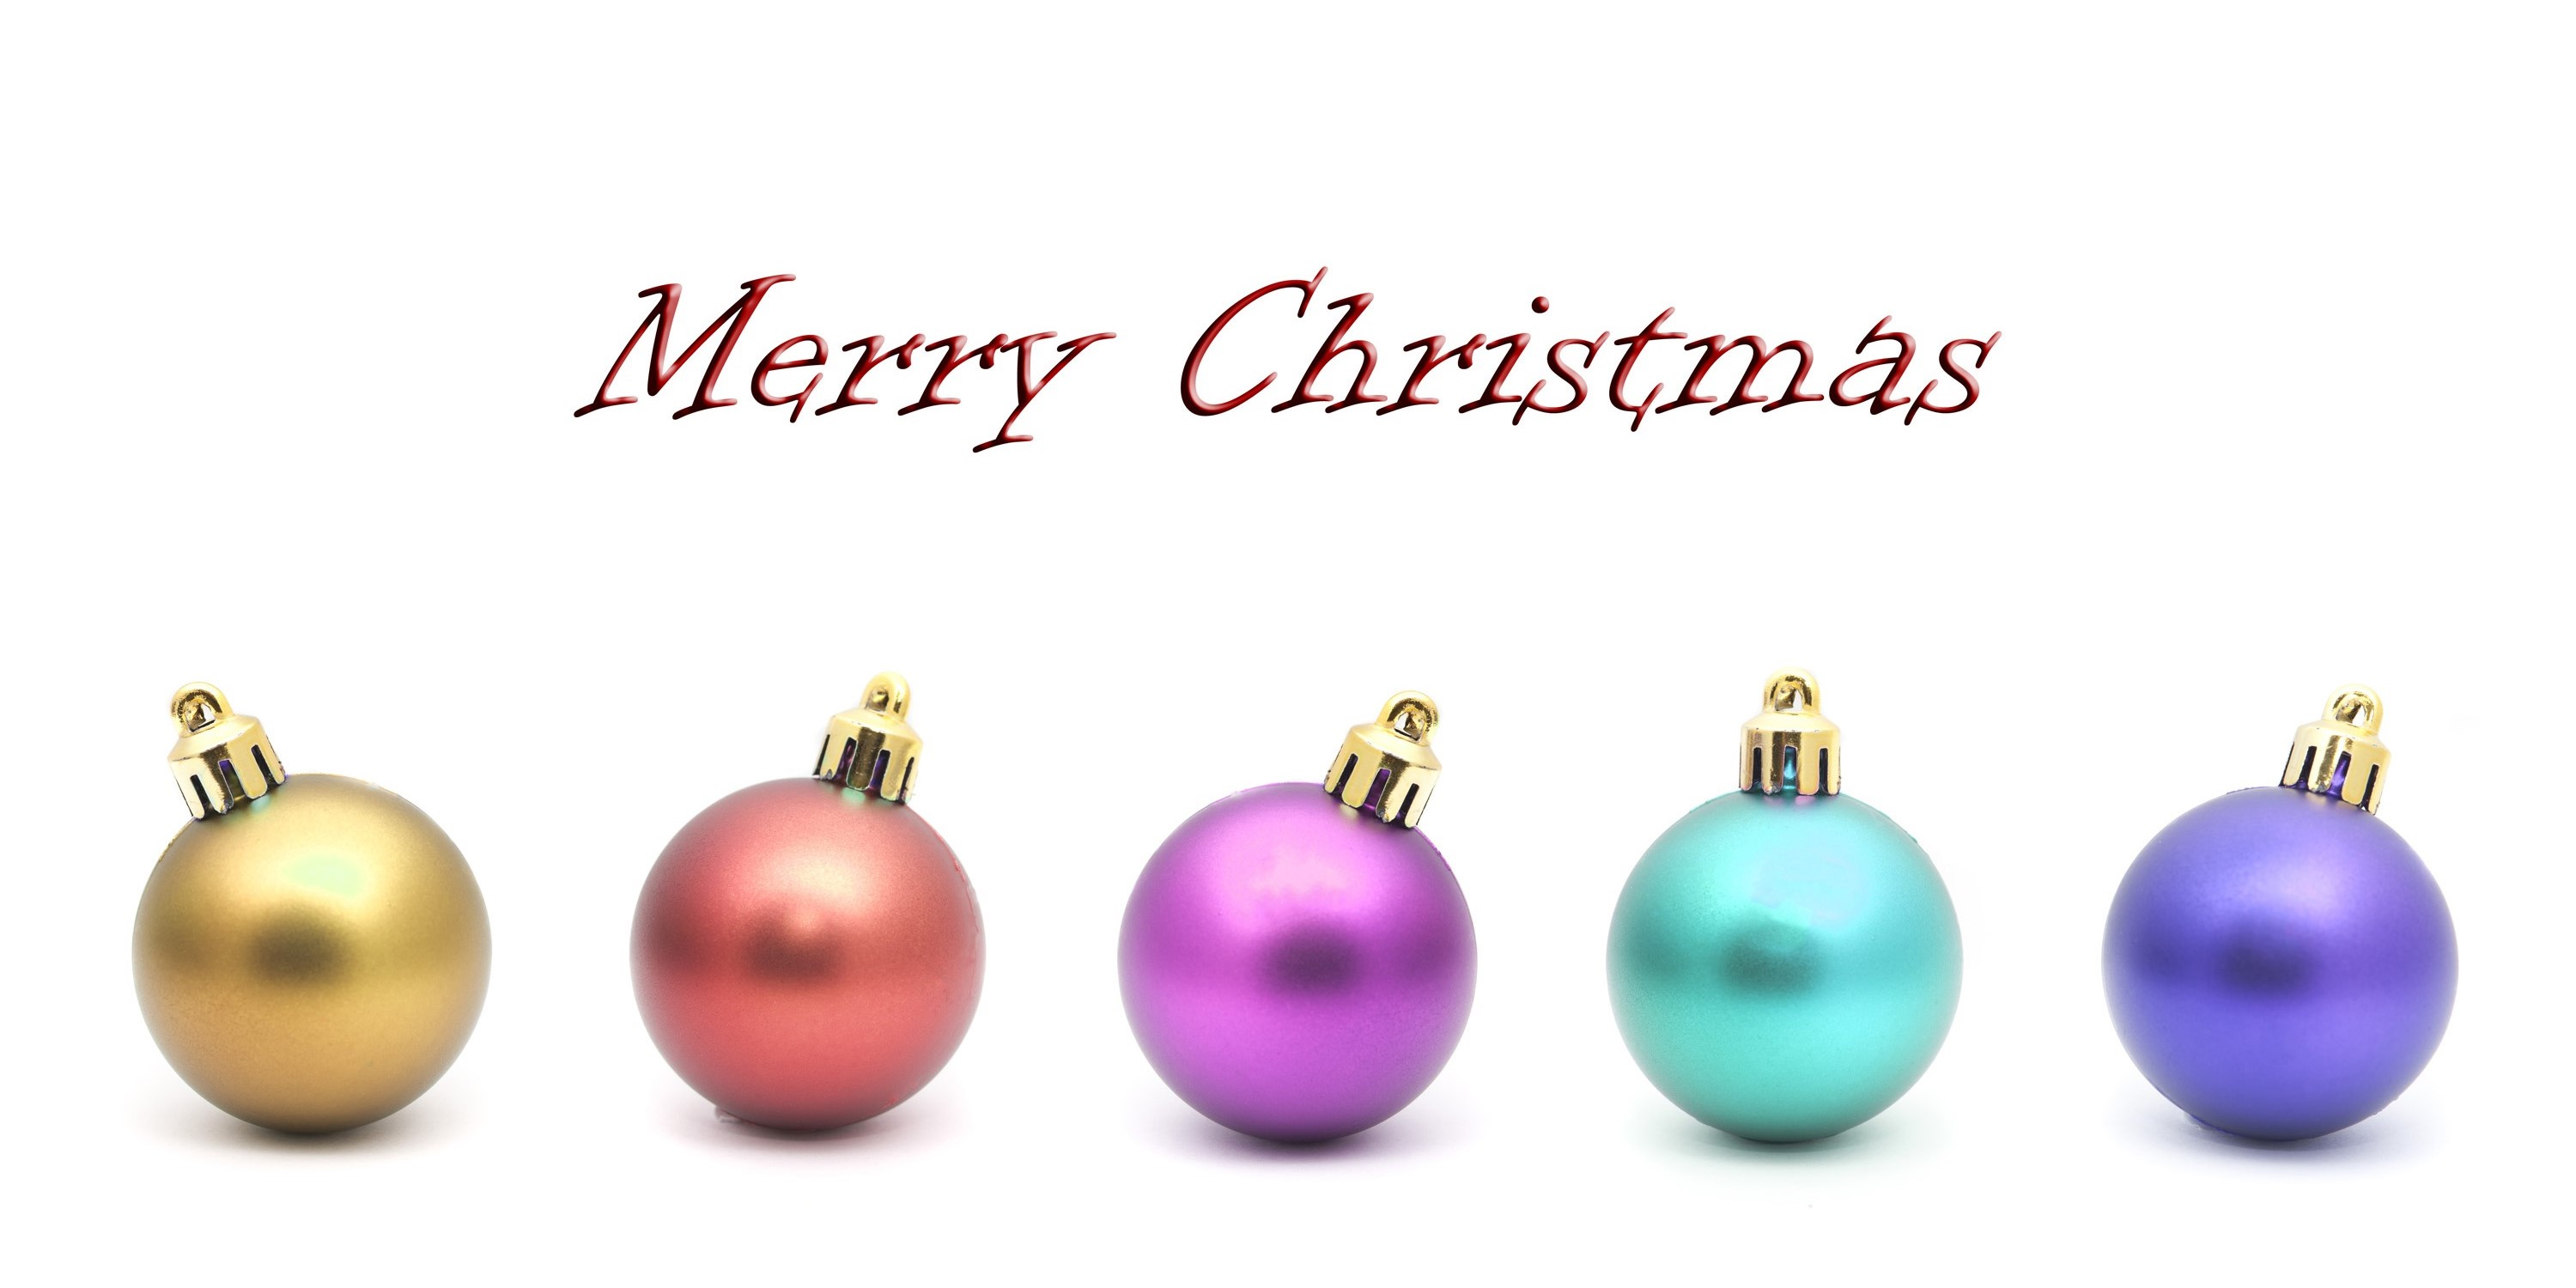 Photo of merry christmas greeting card free christmas images merry christmas greeting card with a row of colourful round baubles with shadow detail on a kristyandbryce Images